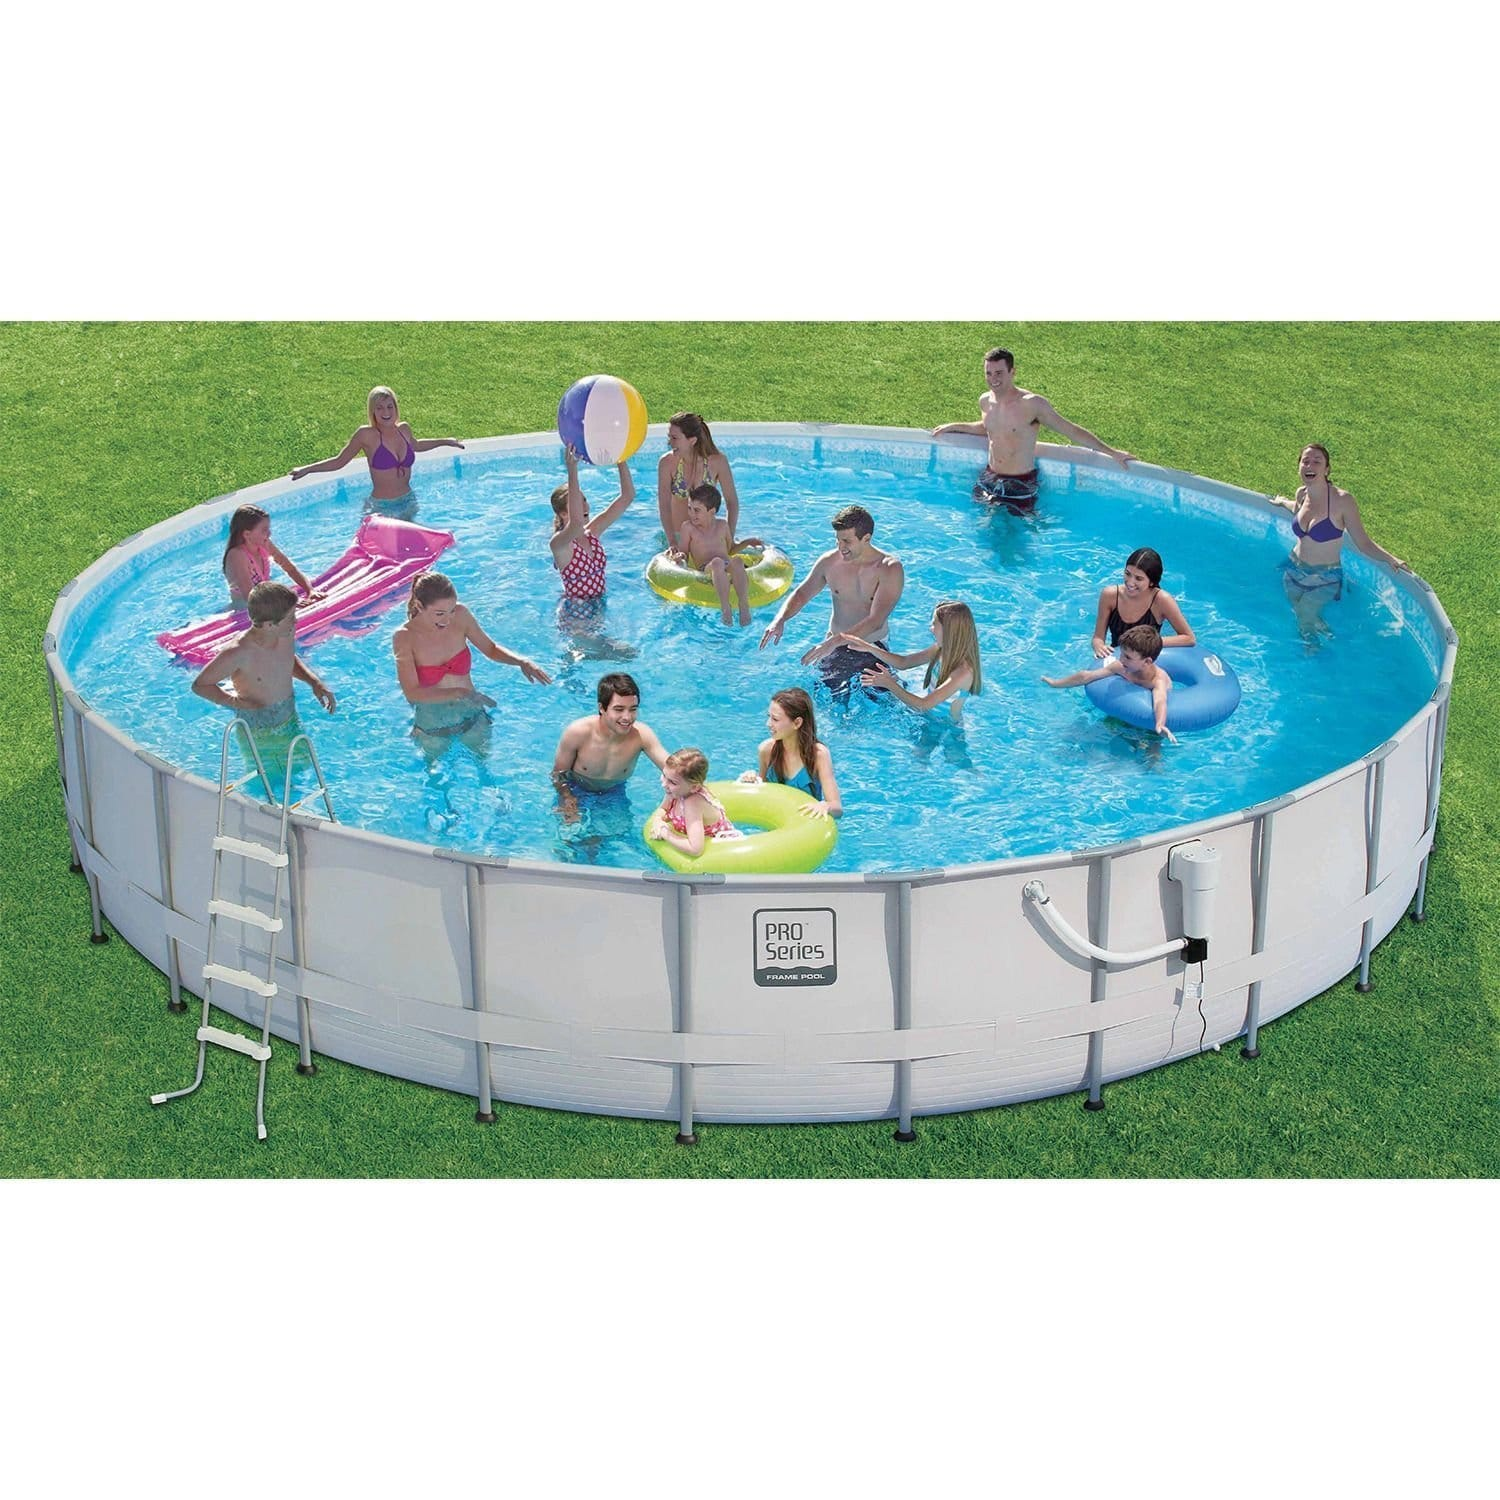 Proseries Frame Pool Set with Mosaic Print